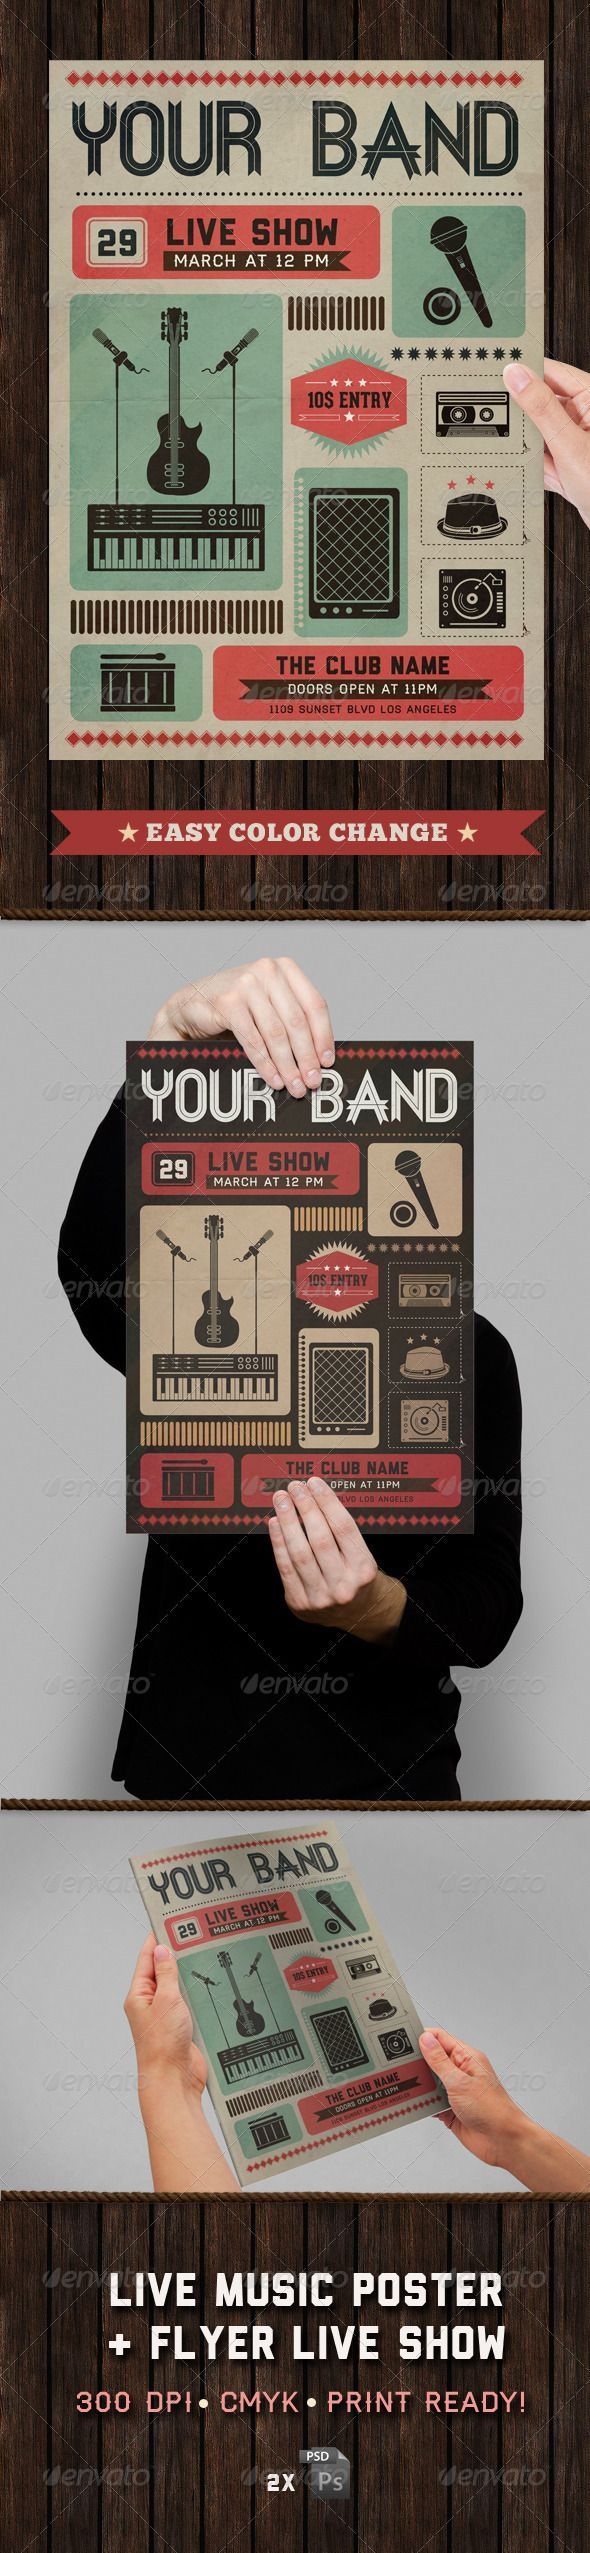 Live Show Music Poster  Flyer Template  Graphicriver Item For